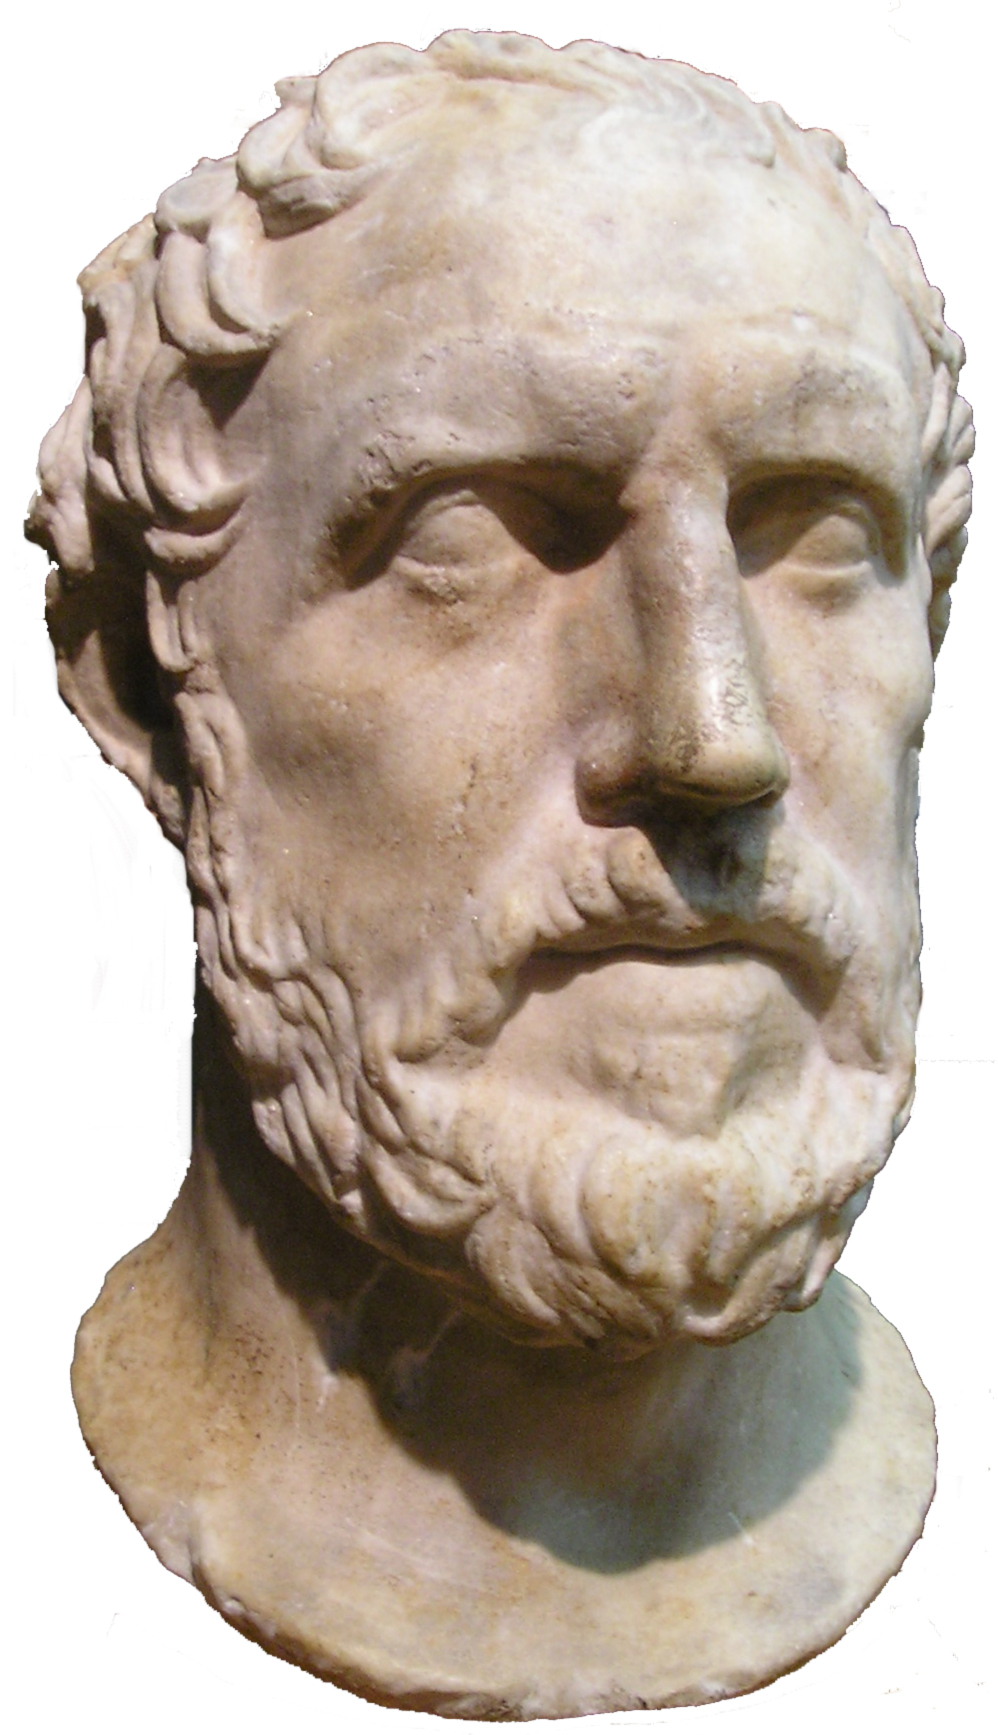 http://upload.wikimedia.org/wikipedia/commons/1/10/Thucydides-bust-cutout_ROM.jpg